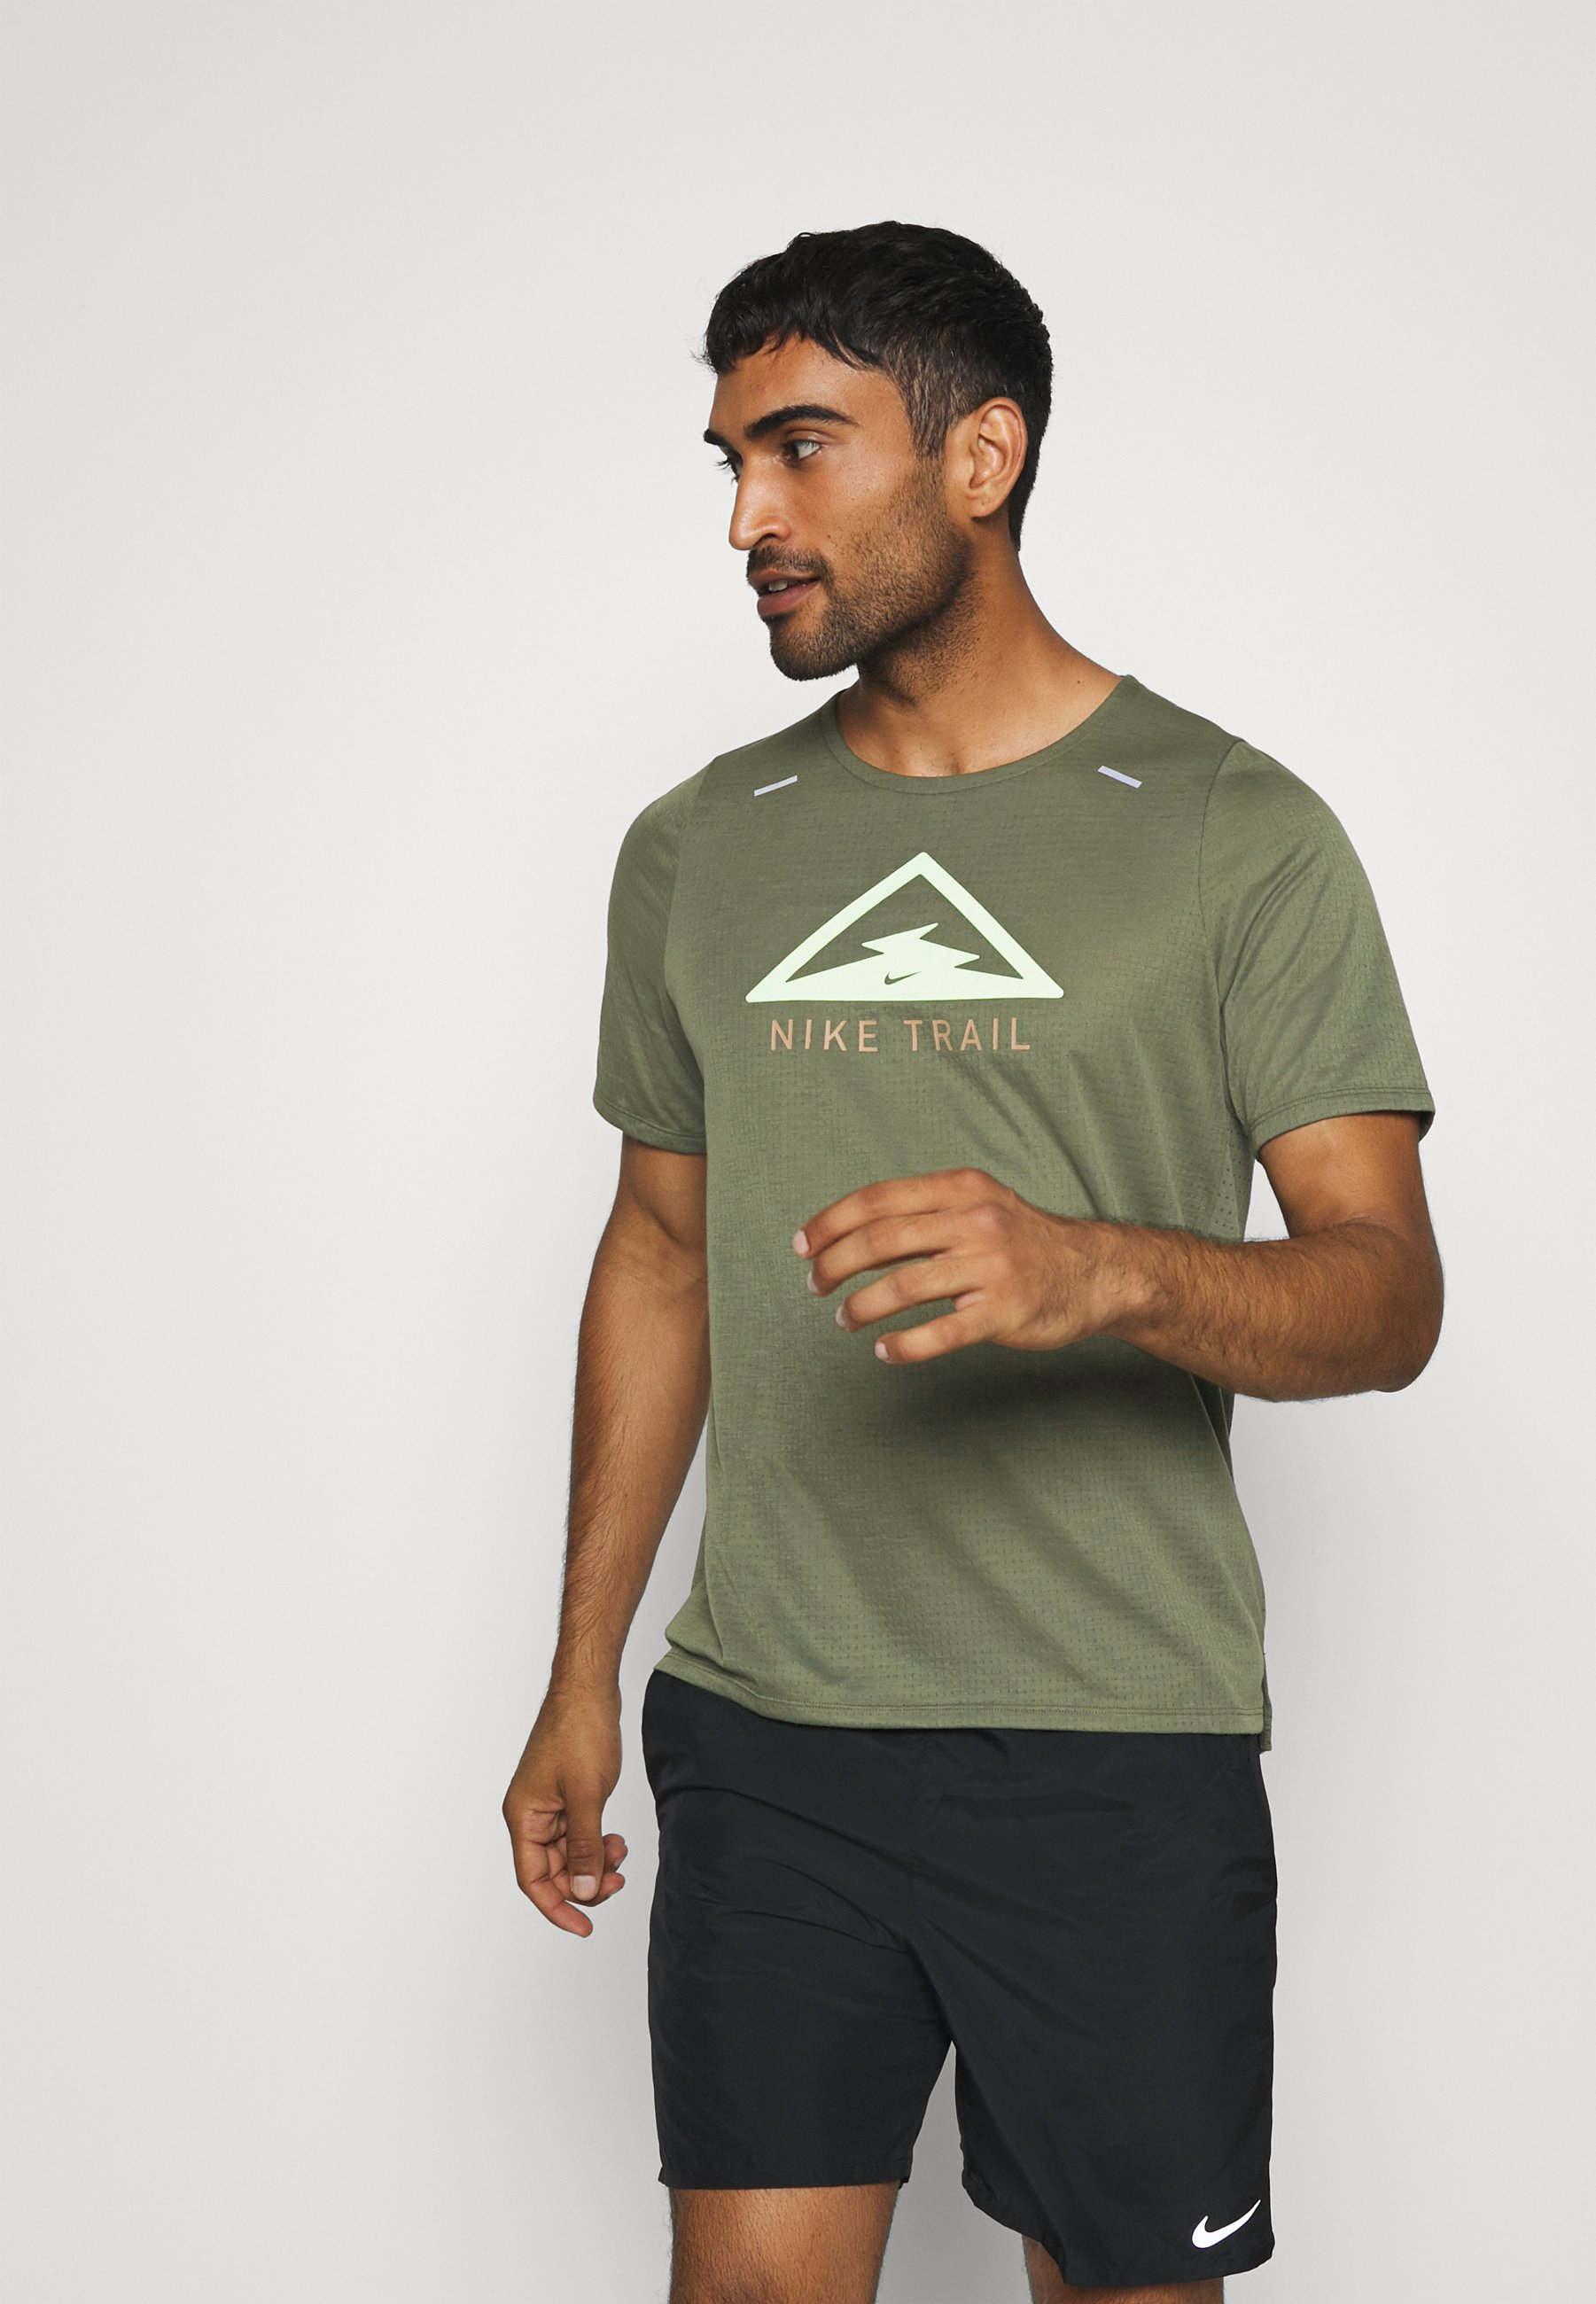 Best Authentic New Fashion Style Of Men's Clothing Nike Performance RISE TRAIL Print T-shirt medium olive/barely volt rPBBRFwAg AeEyOiNRF